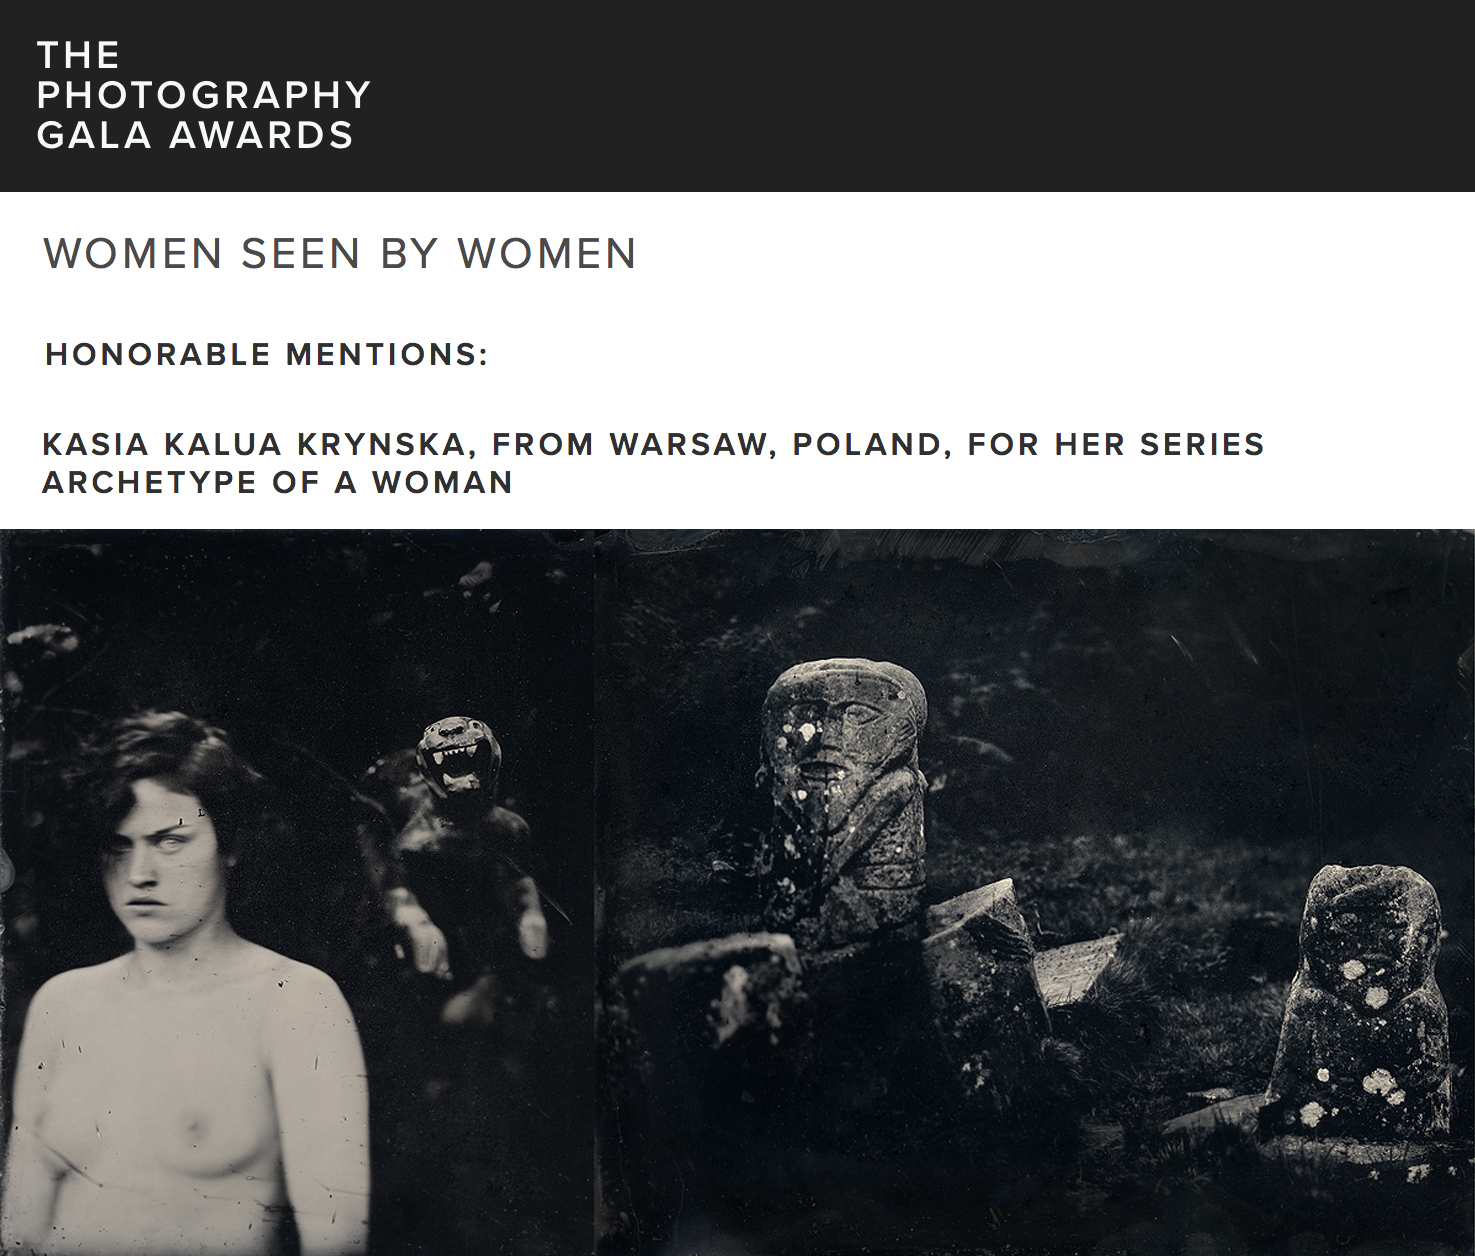 woman seen by woman krynska